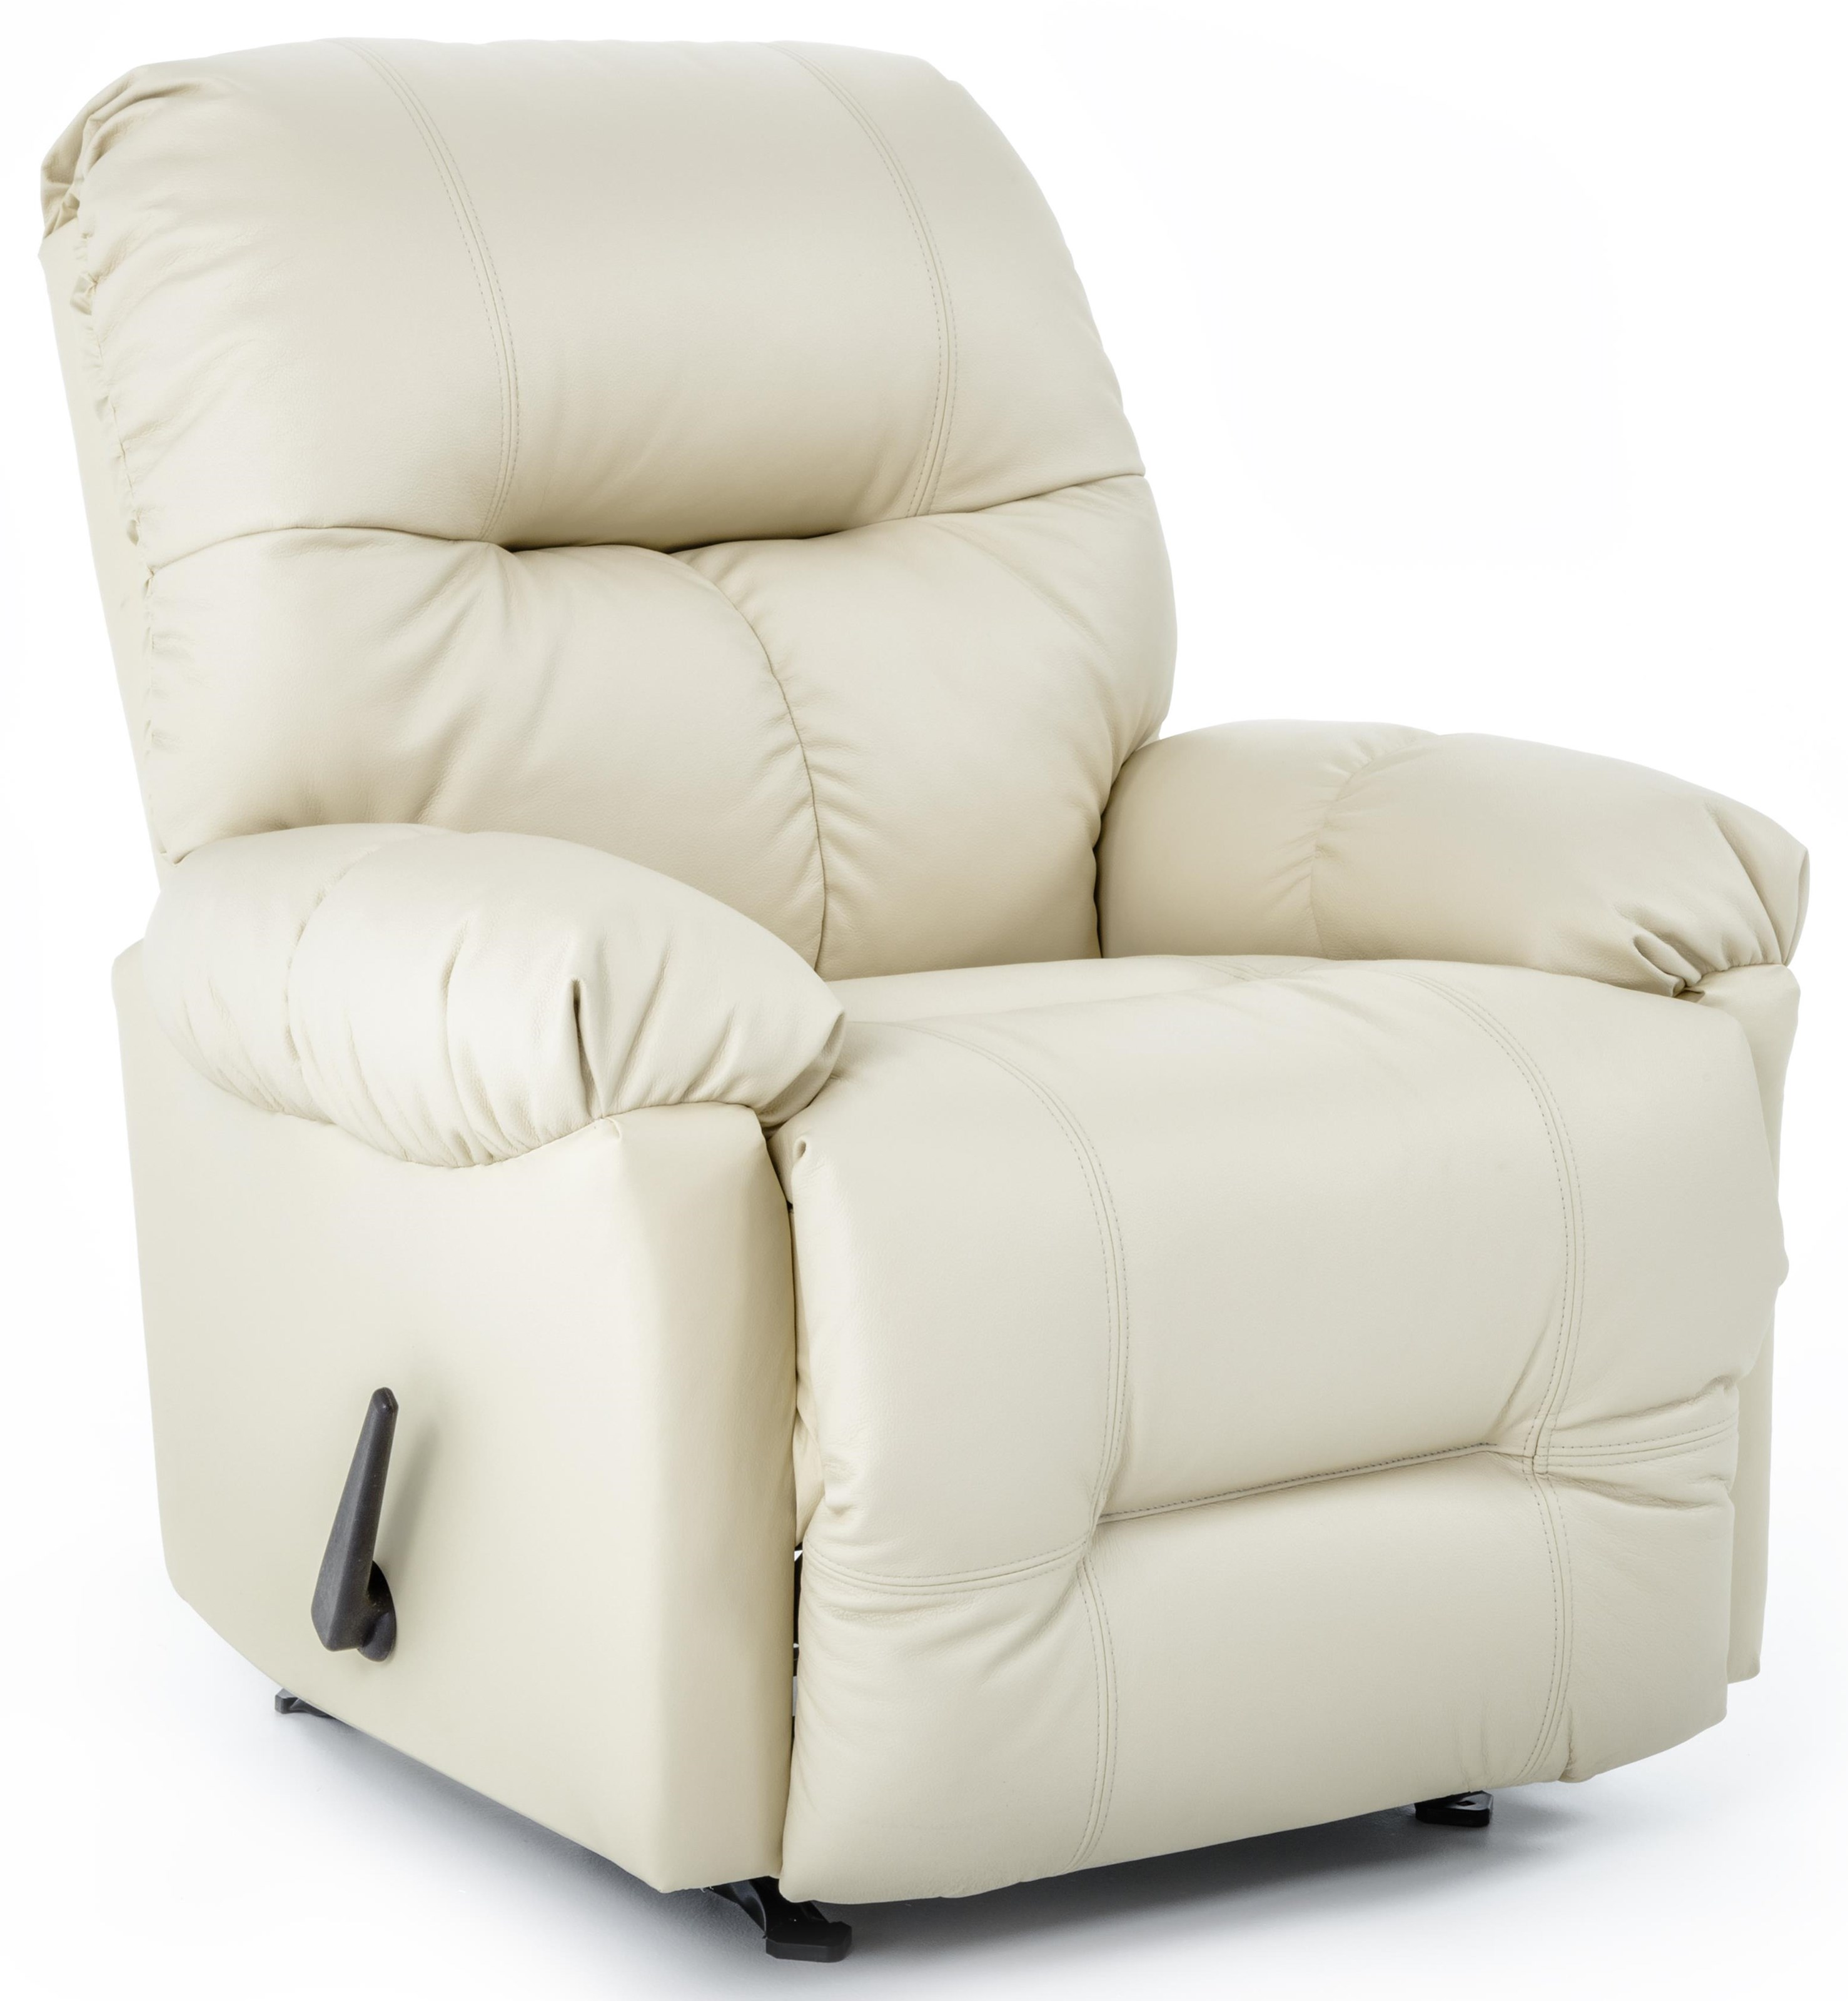 Medium Recliners Rocker Recliner by Best Home Furnishings at Baer's Furniture